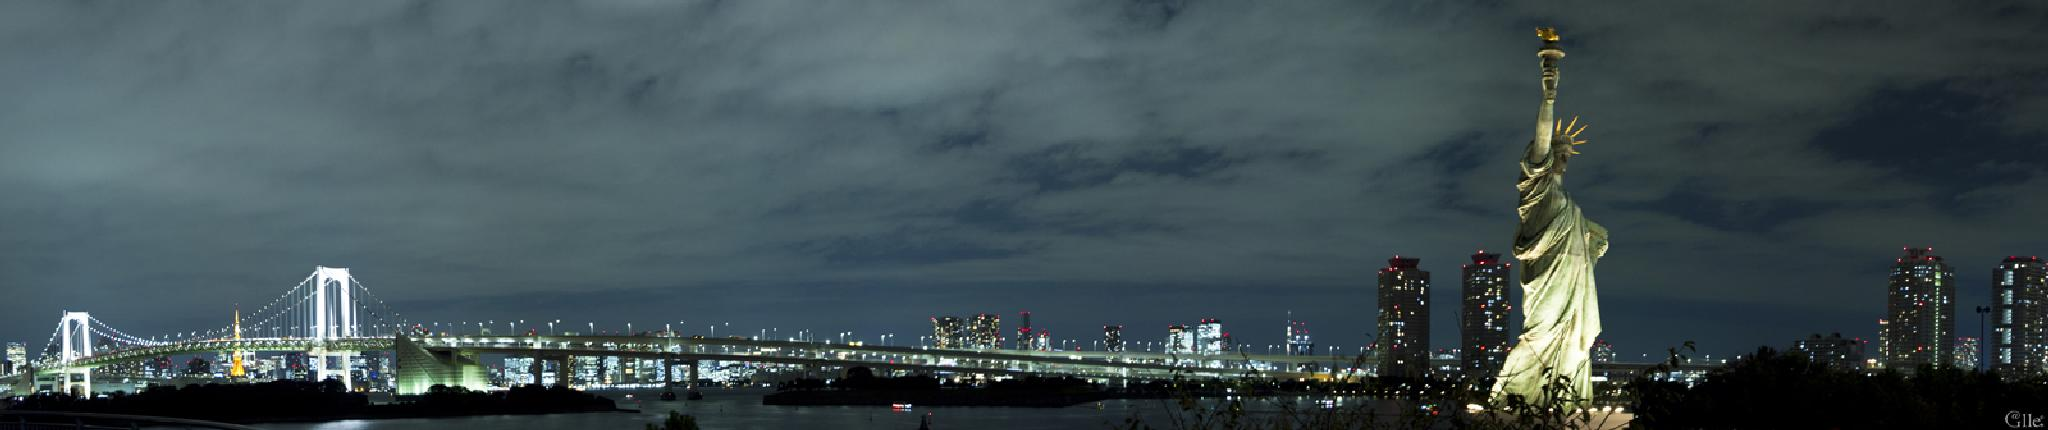 Odaiba by Galle